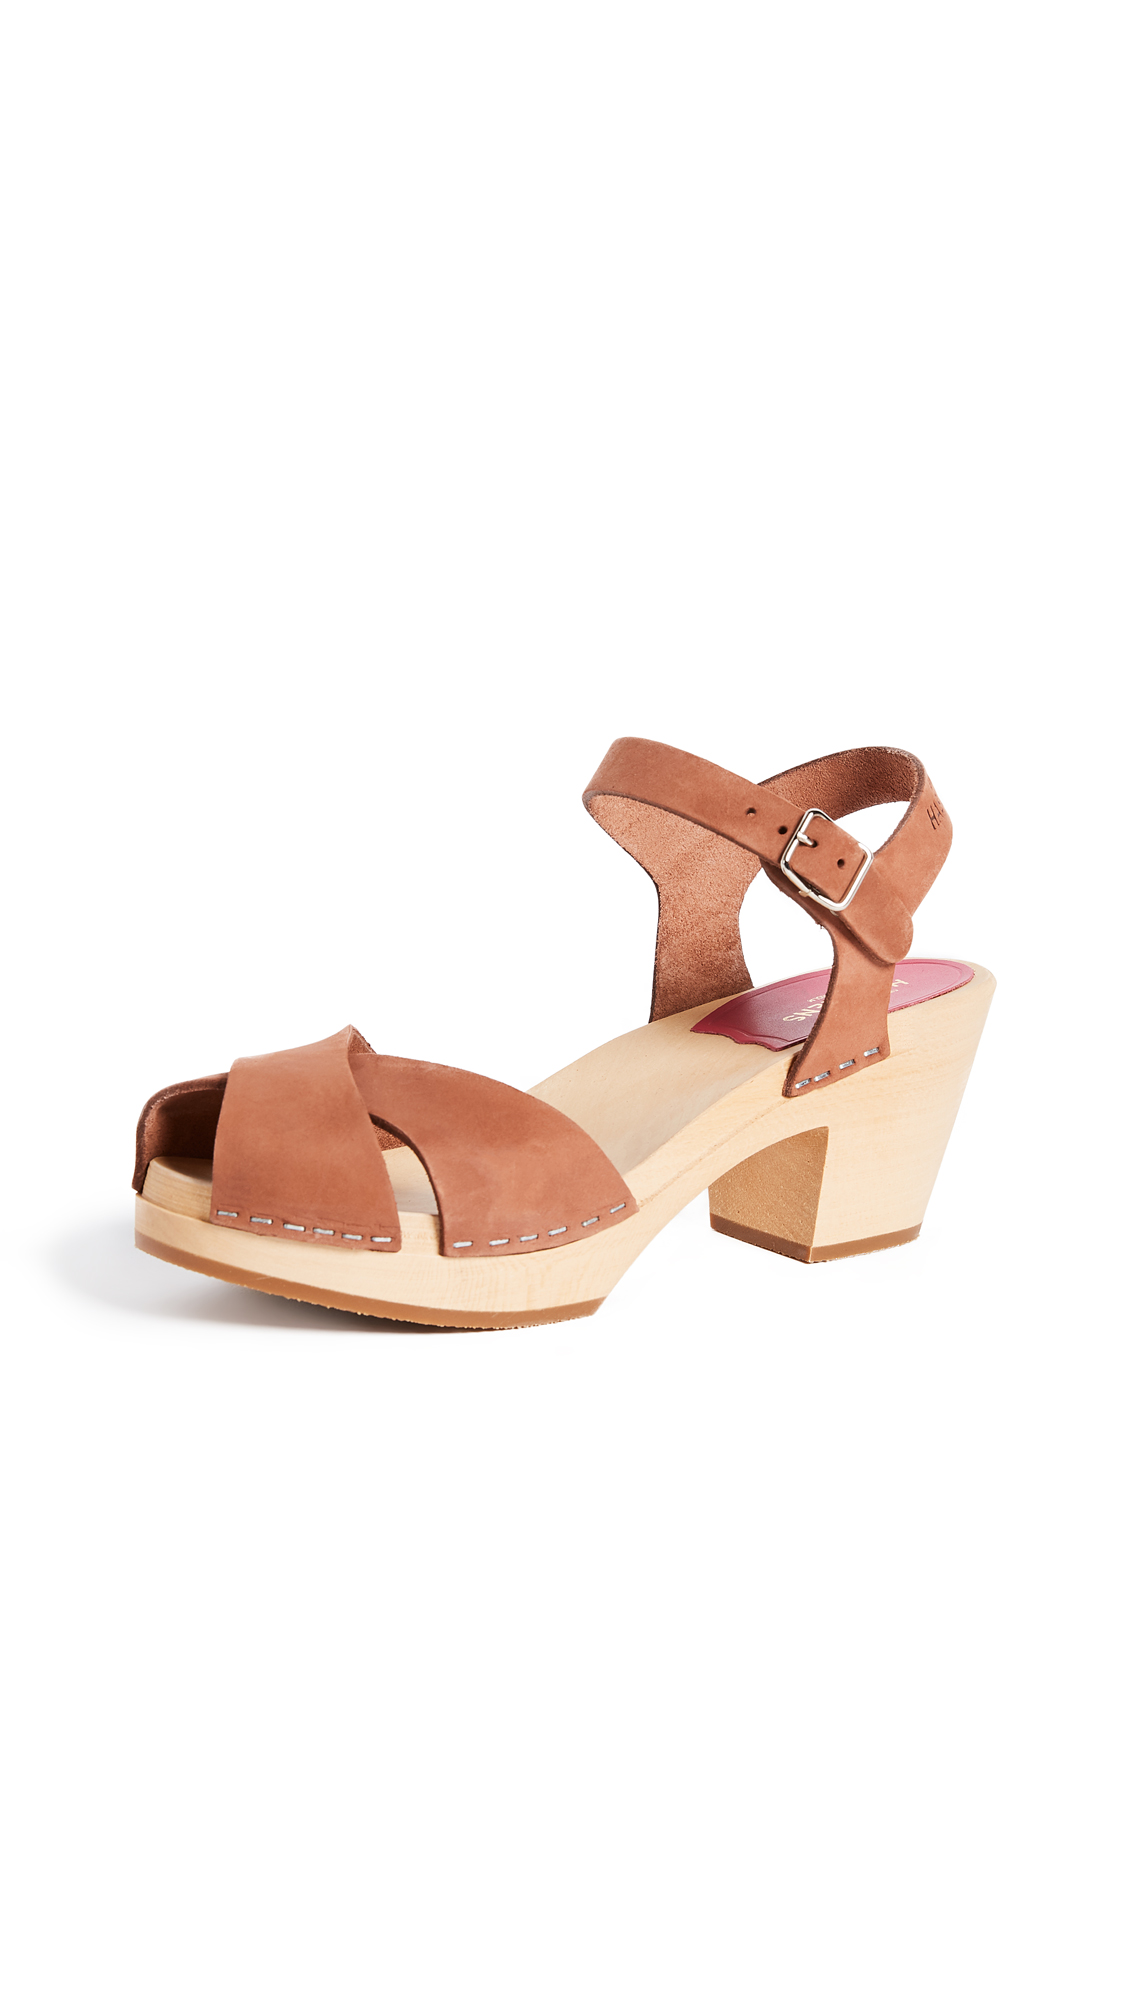 Swedish Hasbeens Mirja Sandals - Cognac